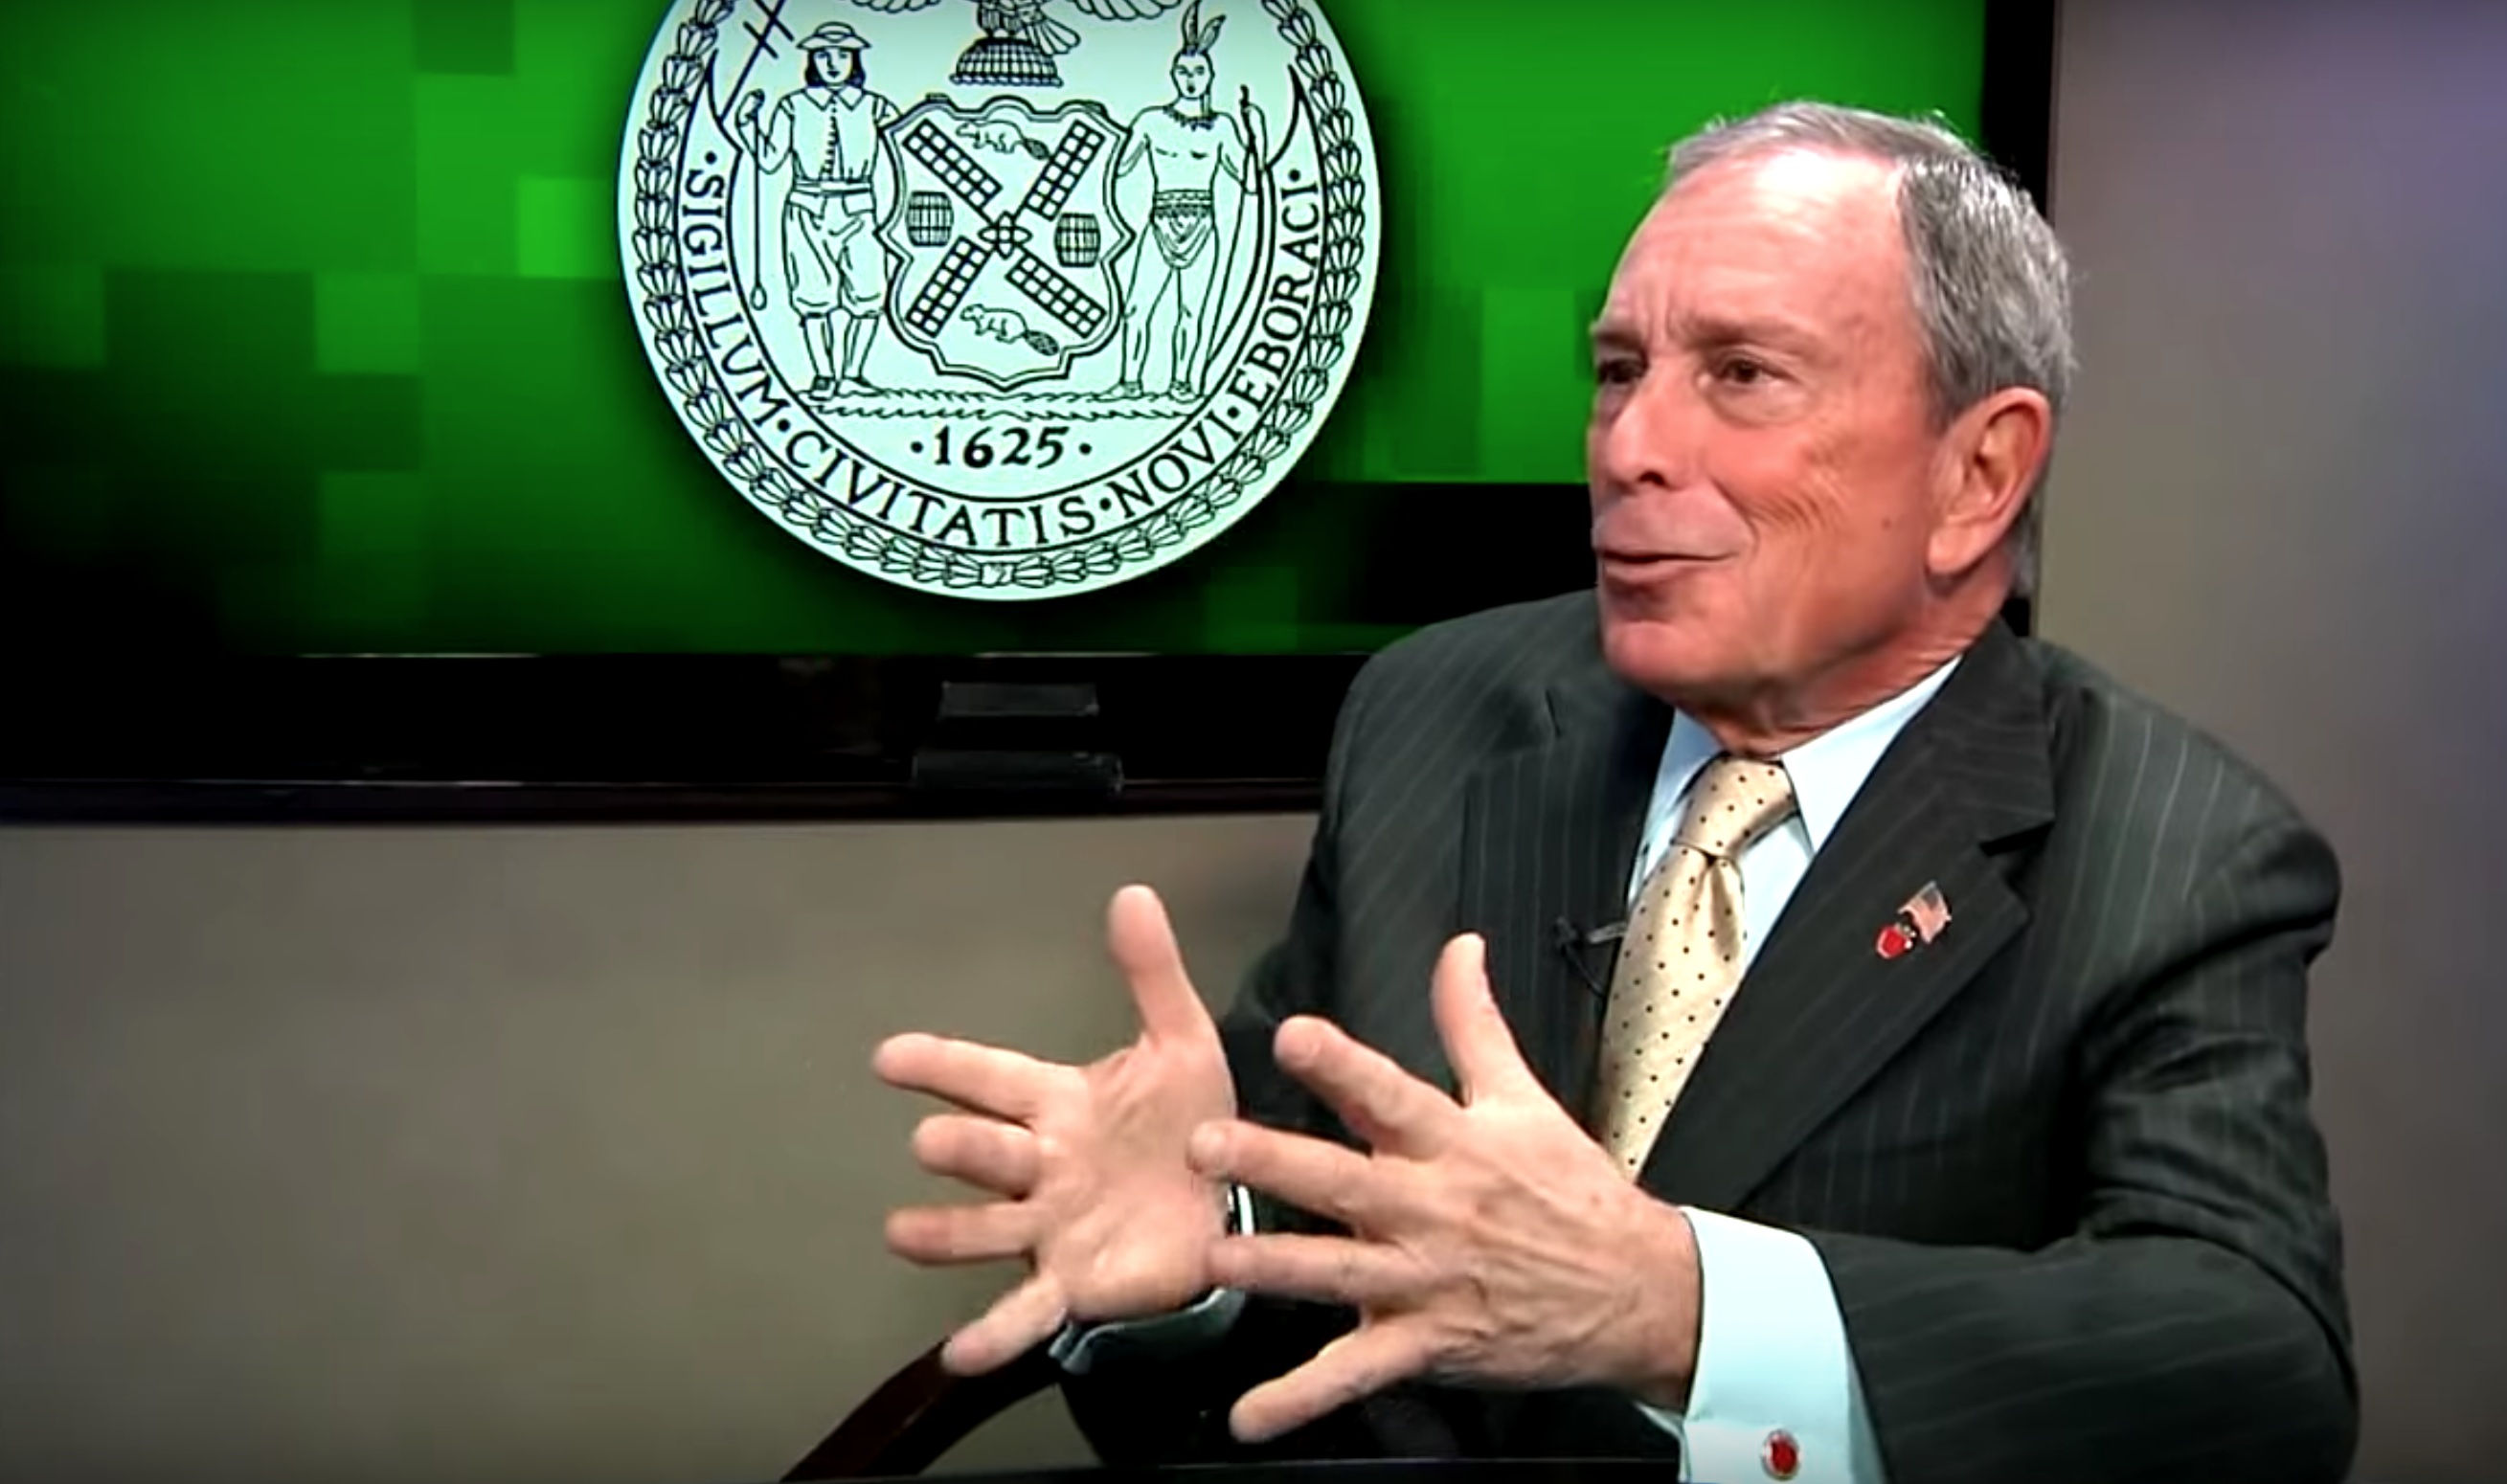 Report: Billionaire Bloomberg hired prison labor to make election calls